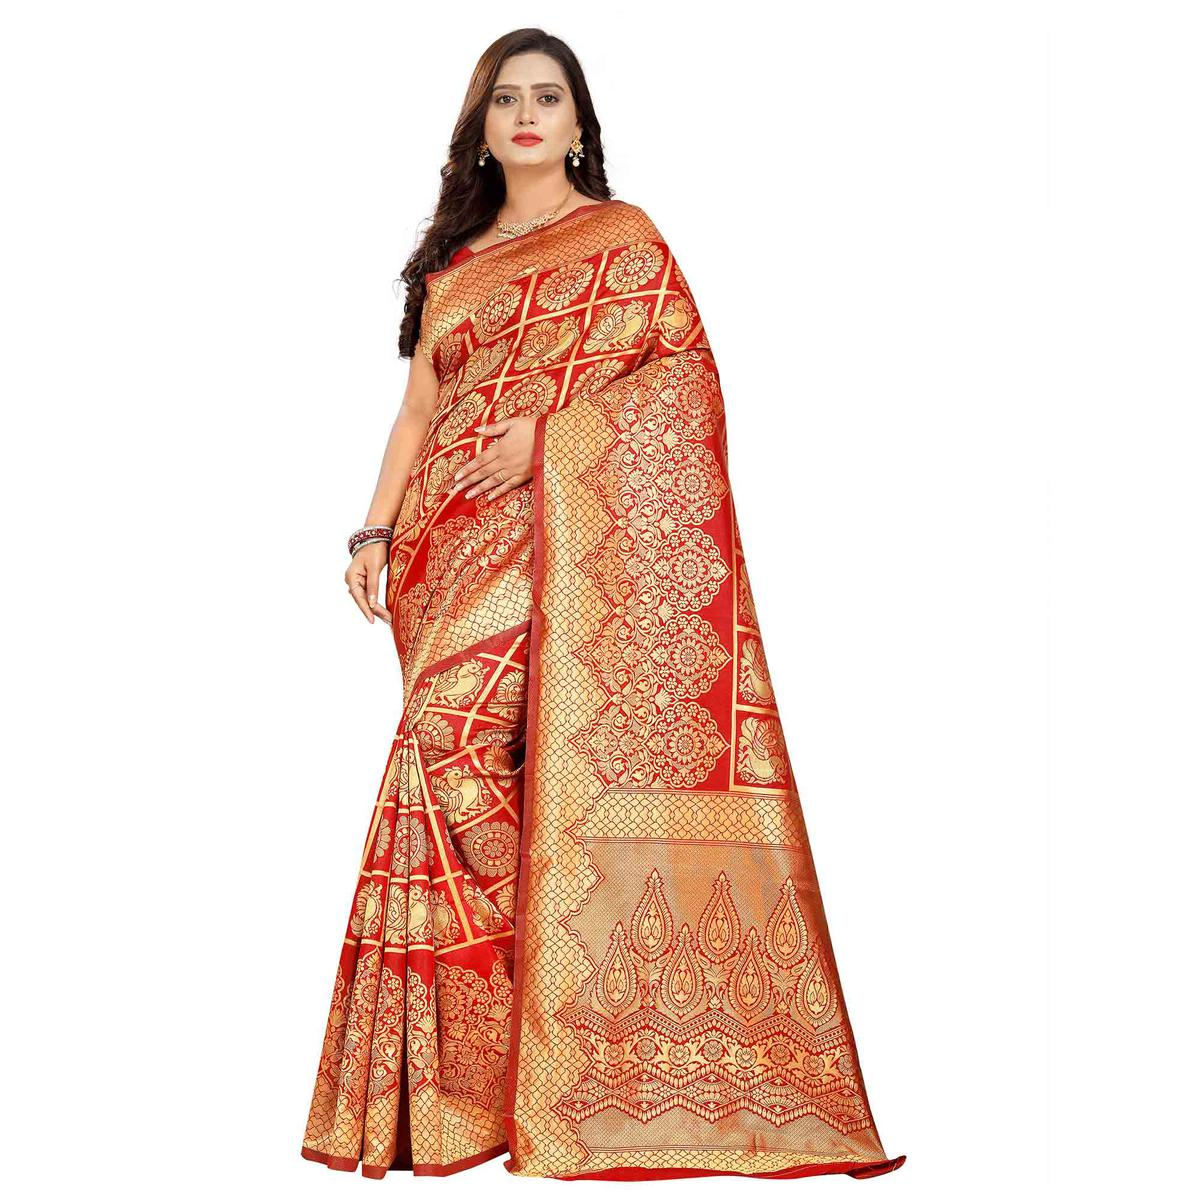 Captivating Red Colored Festive Wear Woven Silk Saree